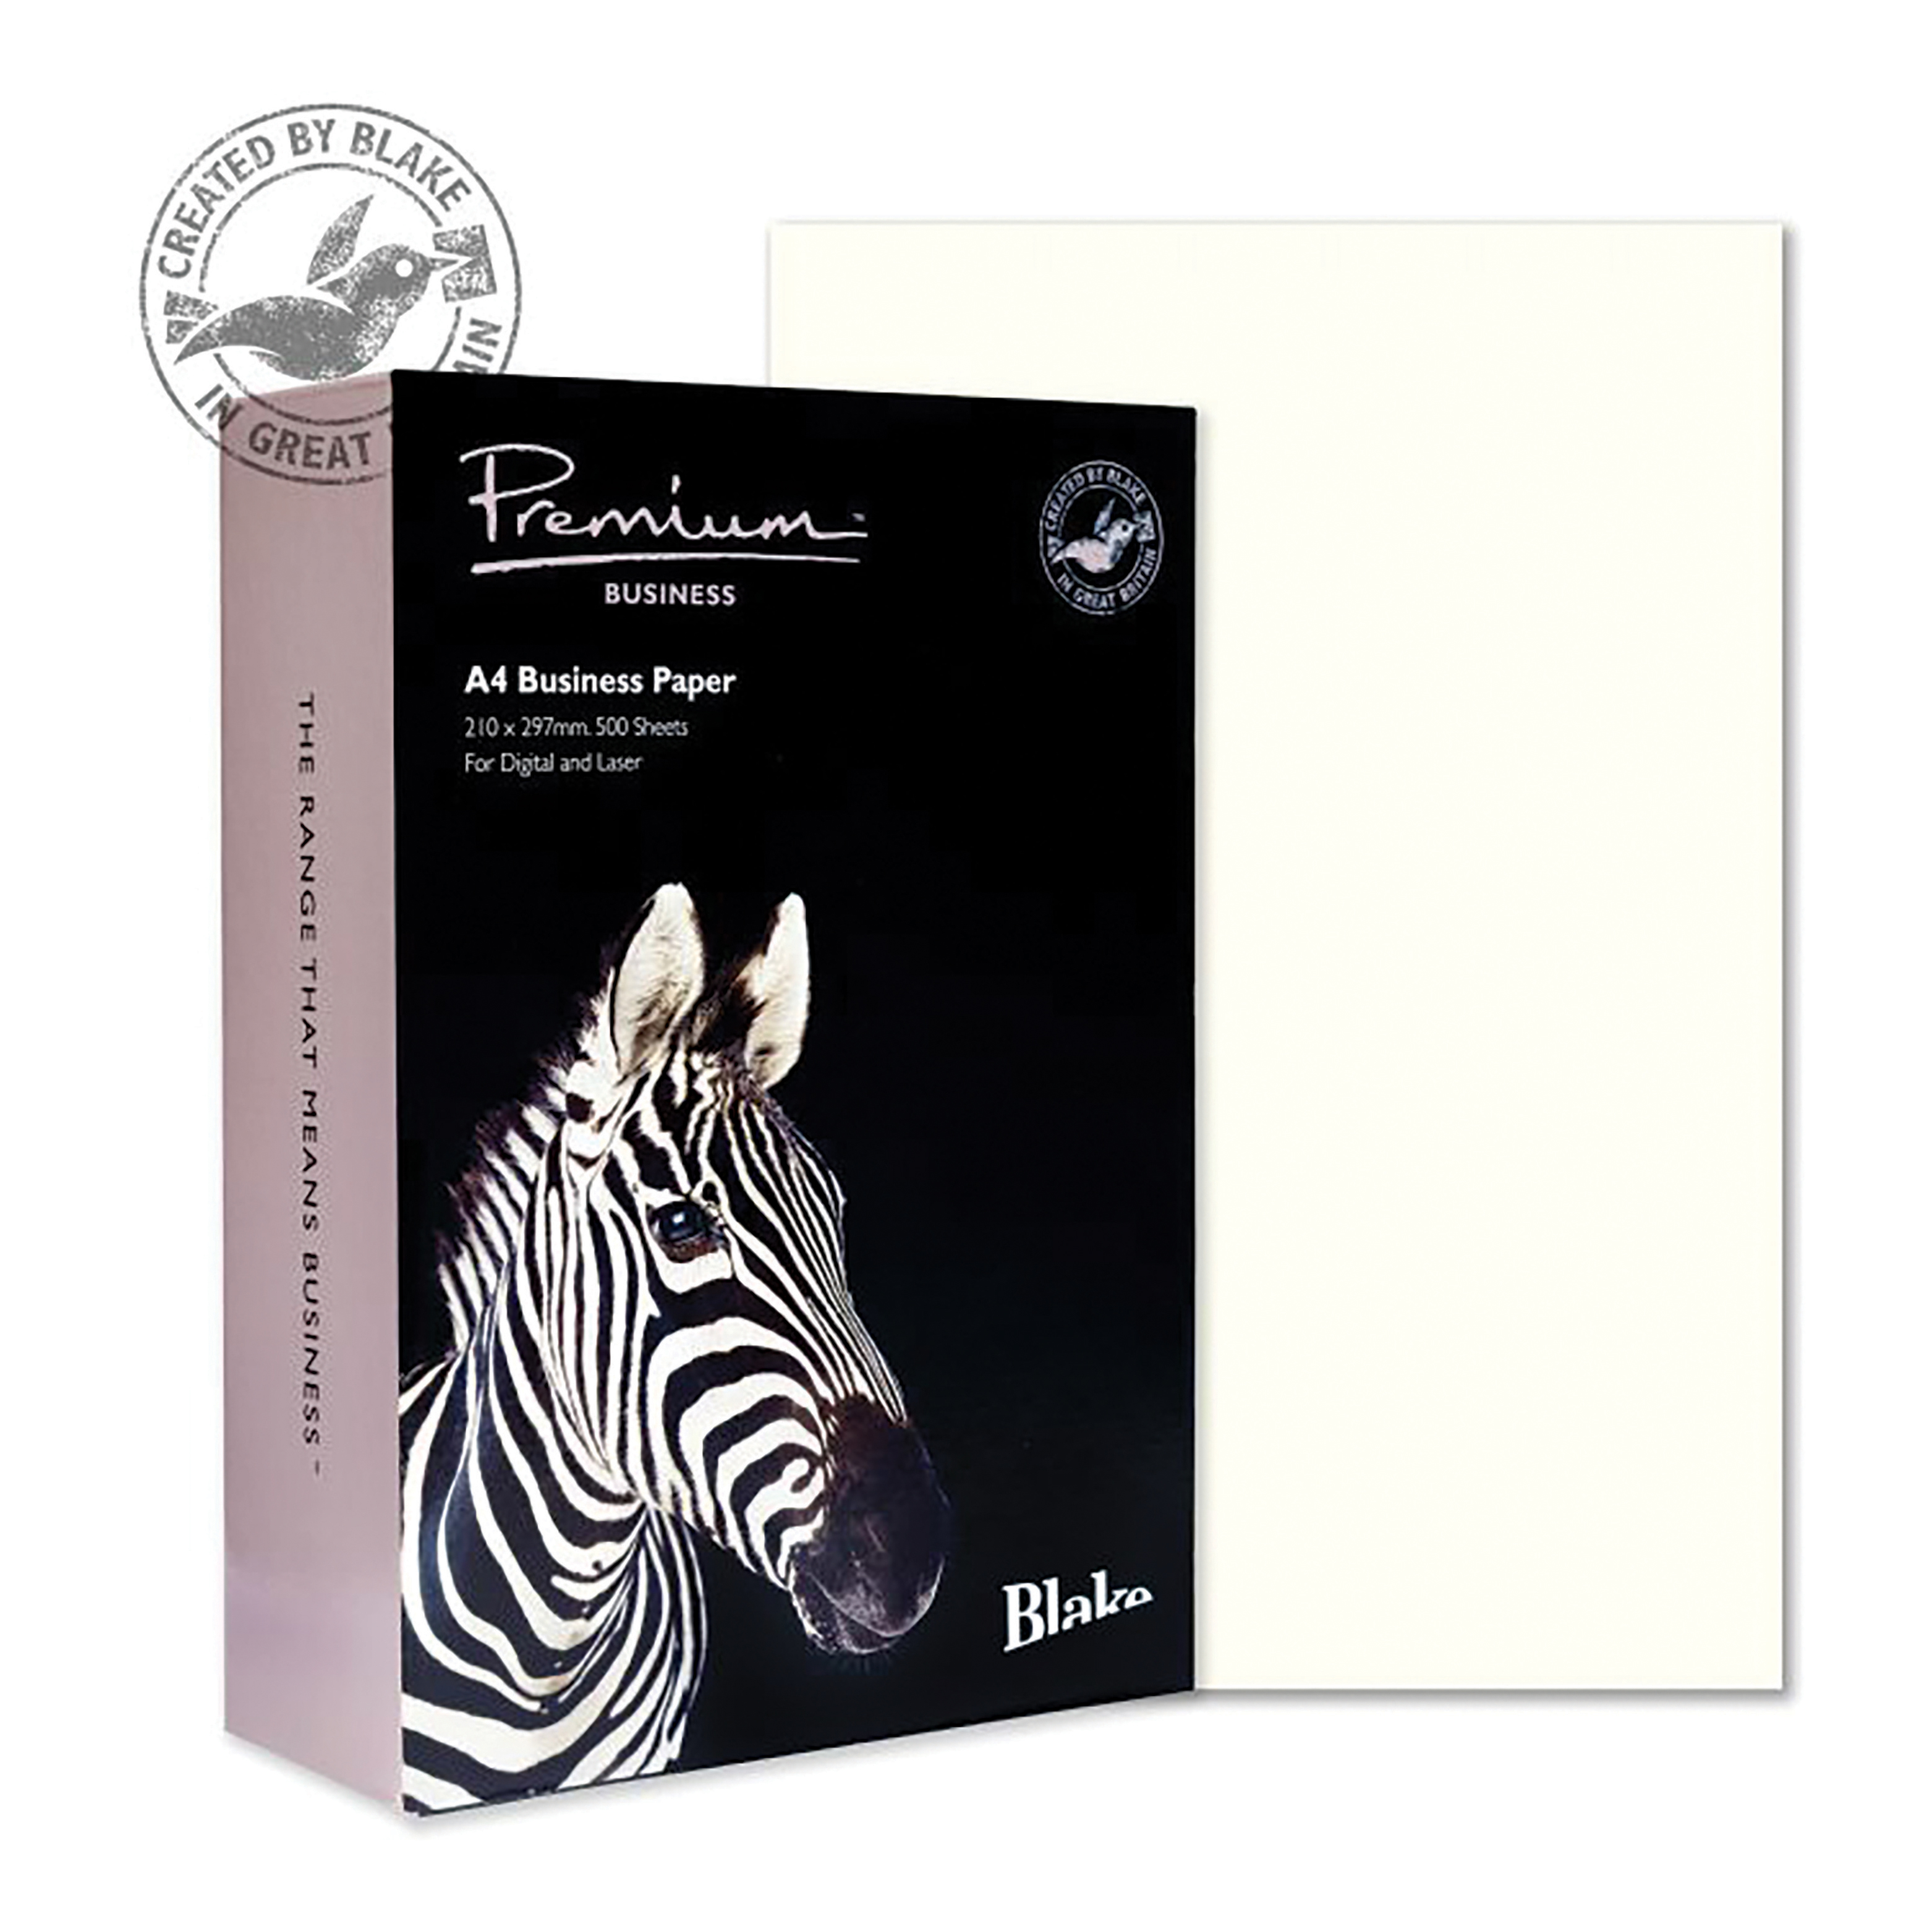 Blake Premium Business Paper Wove Finish 120gsm A4 High White [Pack 500] Ref 35677